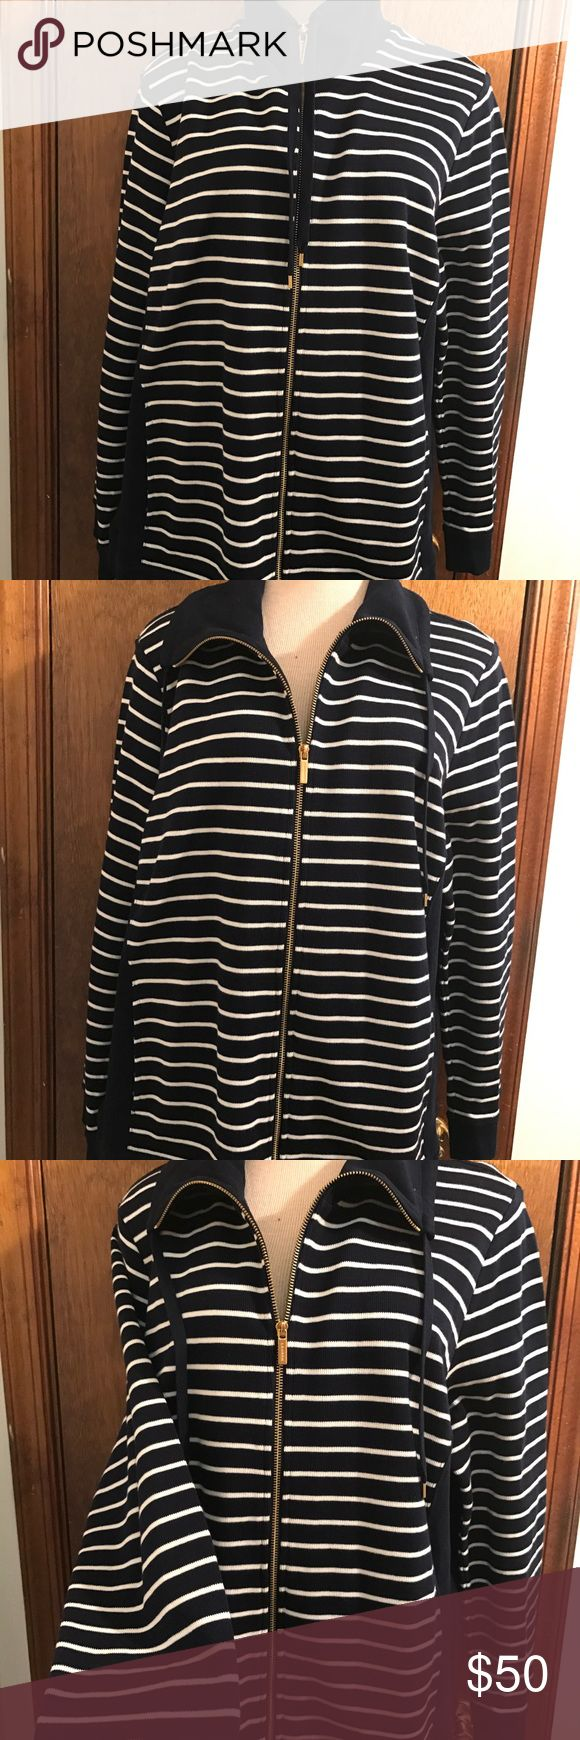 "Lauren Ralph Lauren Navy Blue White Stripe Sweater Lauren Ralph Lauren women's Nautical Navy Blue white stripe sweater zip up jacket size 2X 100% cotton  Gold zipper Chest 24.5"" across Waist 24"" across Sleeves 25.5"" Shoulders 18"" Length 27"" under collar to end of sleeve  Excellent Condition Lauren Ralph Lauren Jackets & Coats"